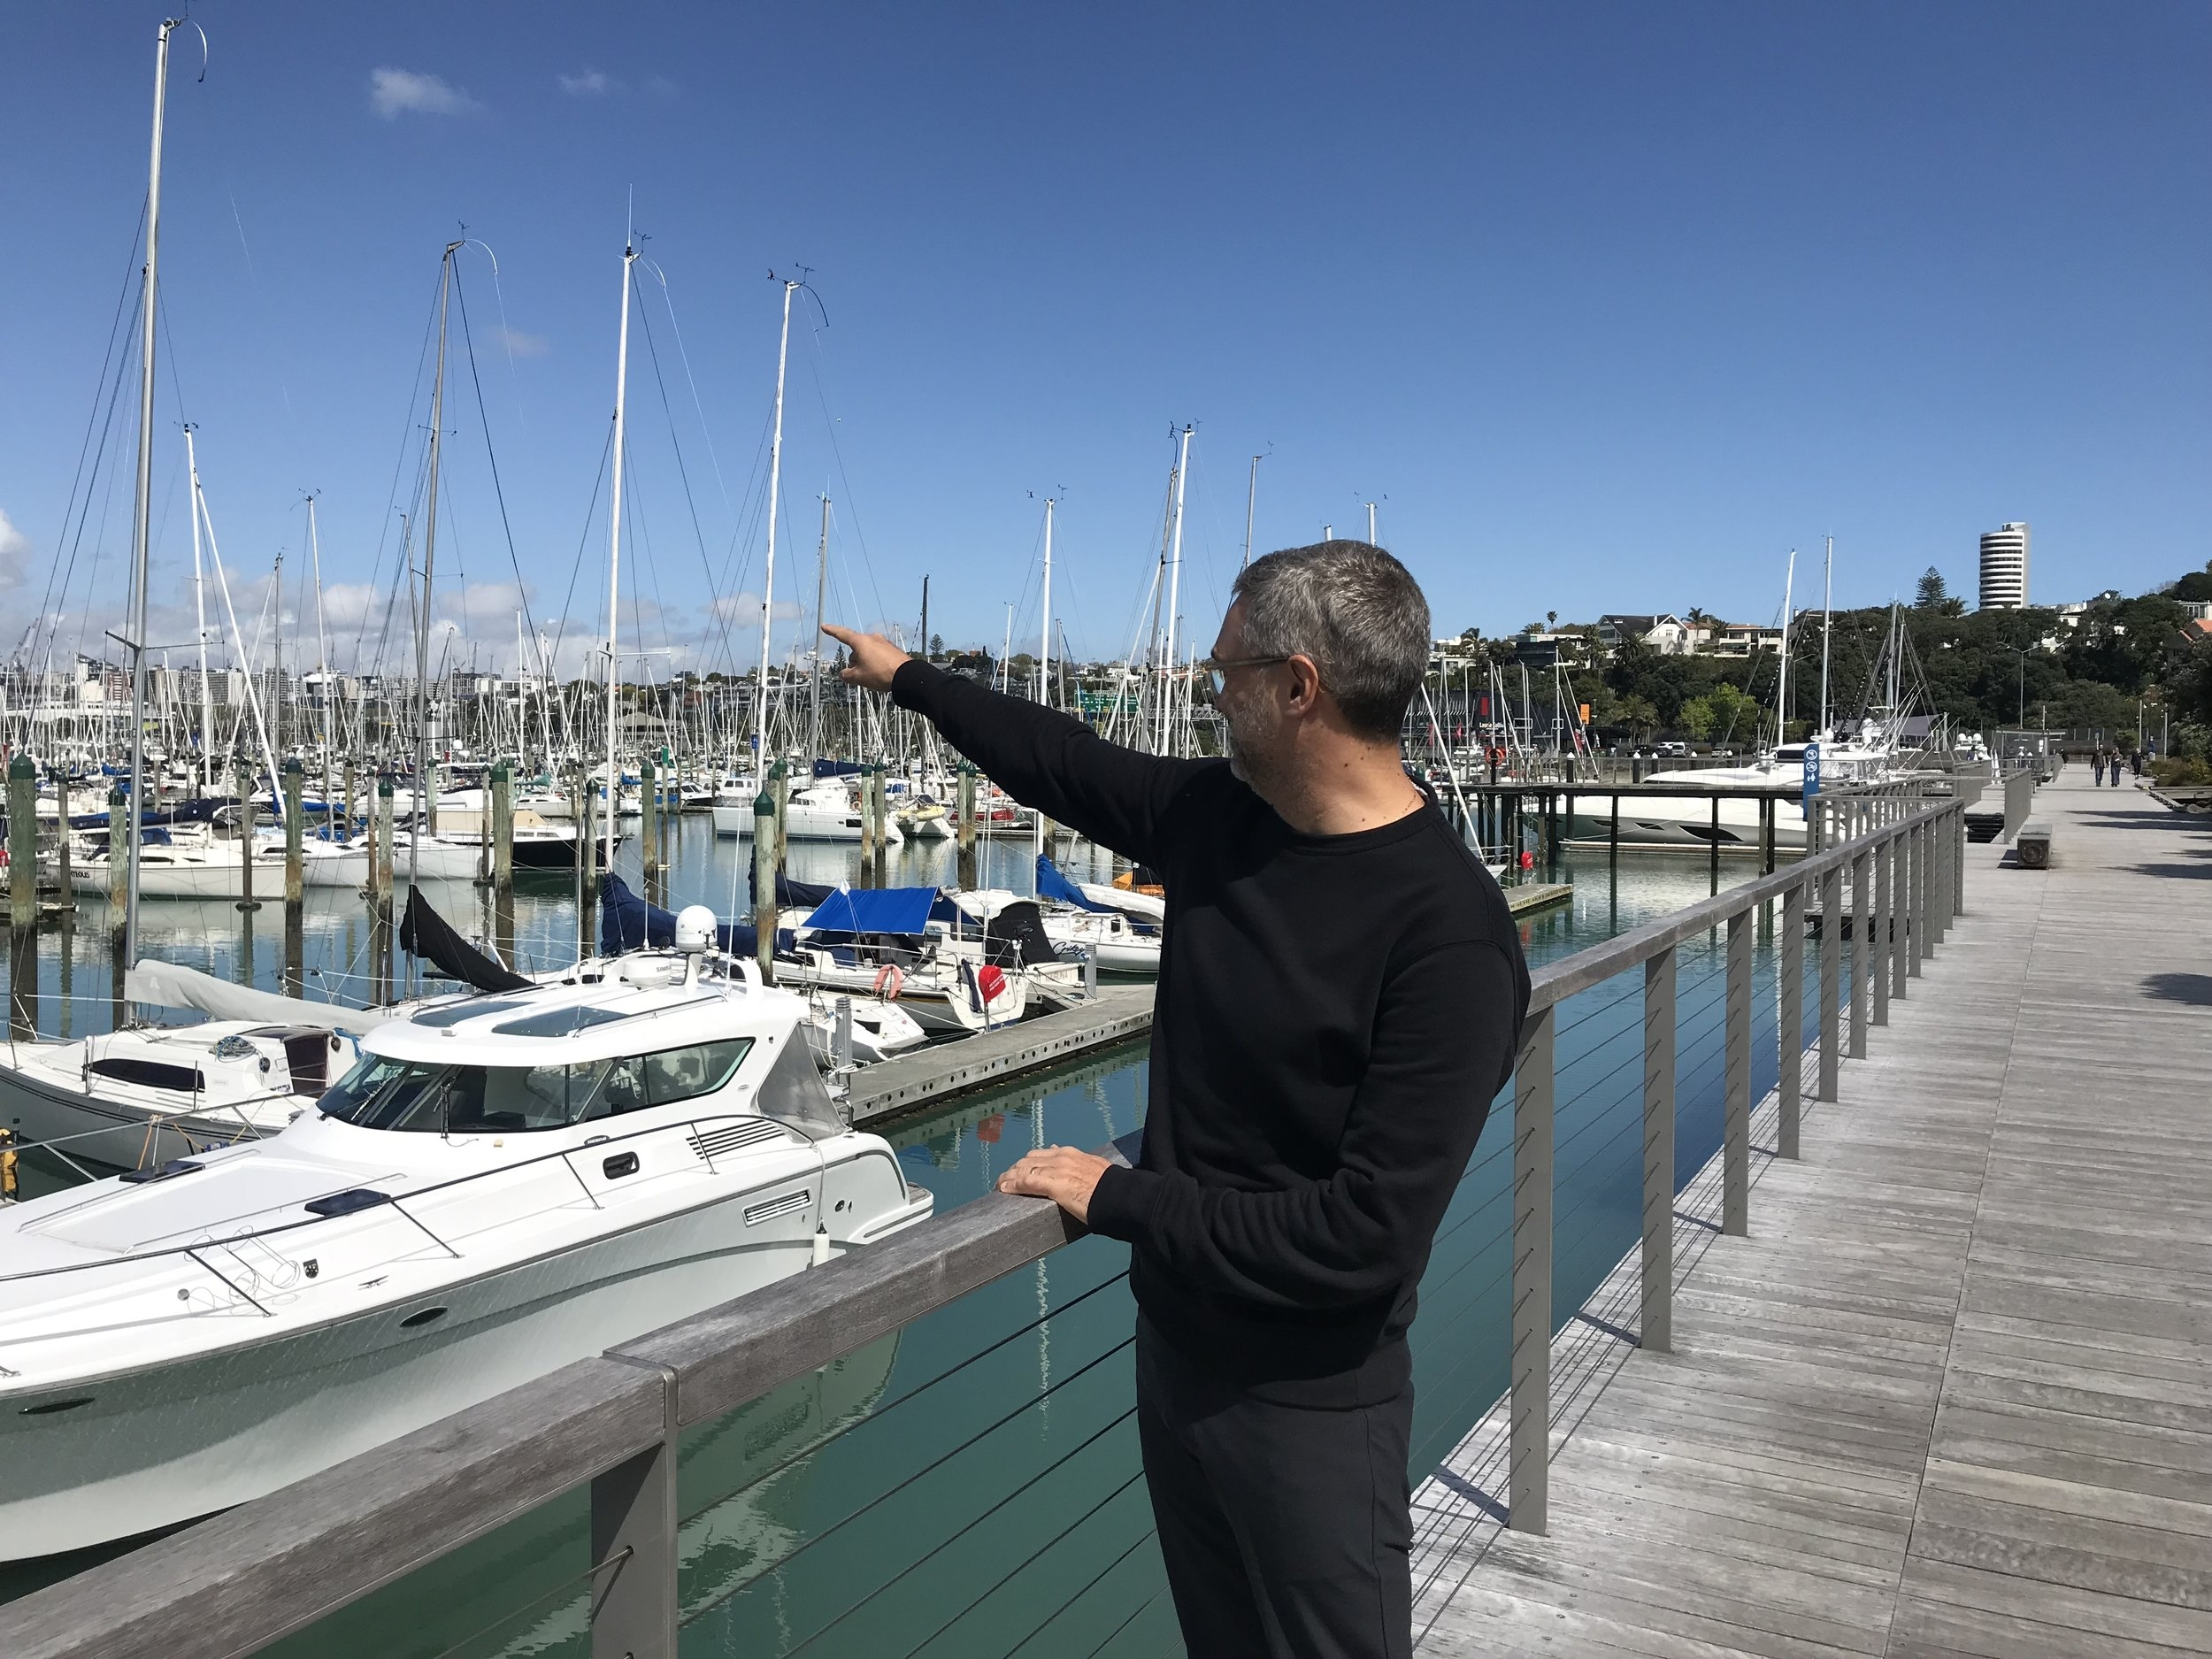 Martin Rein-Cano on LandLAB's Westhaven Promenade in Auckland.